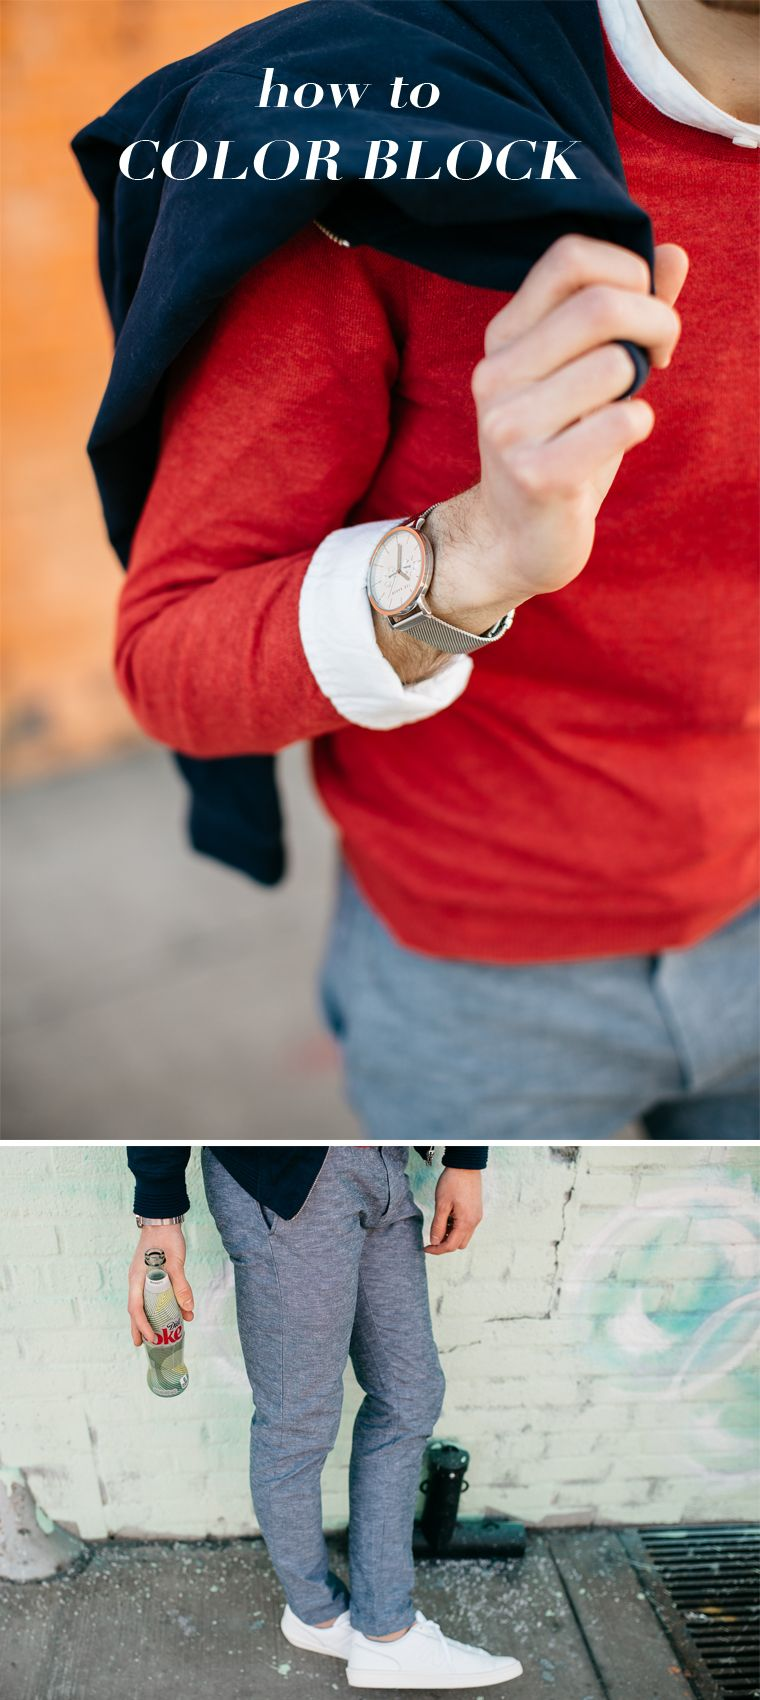 How to wear color block sweaters in collaboration with @dietcokeus